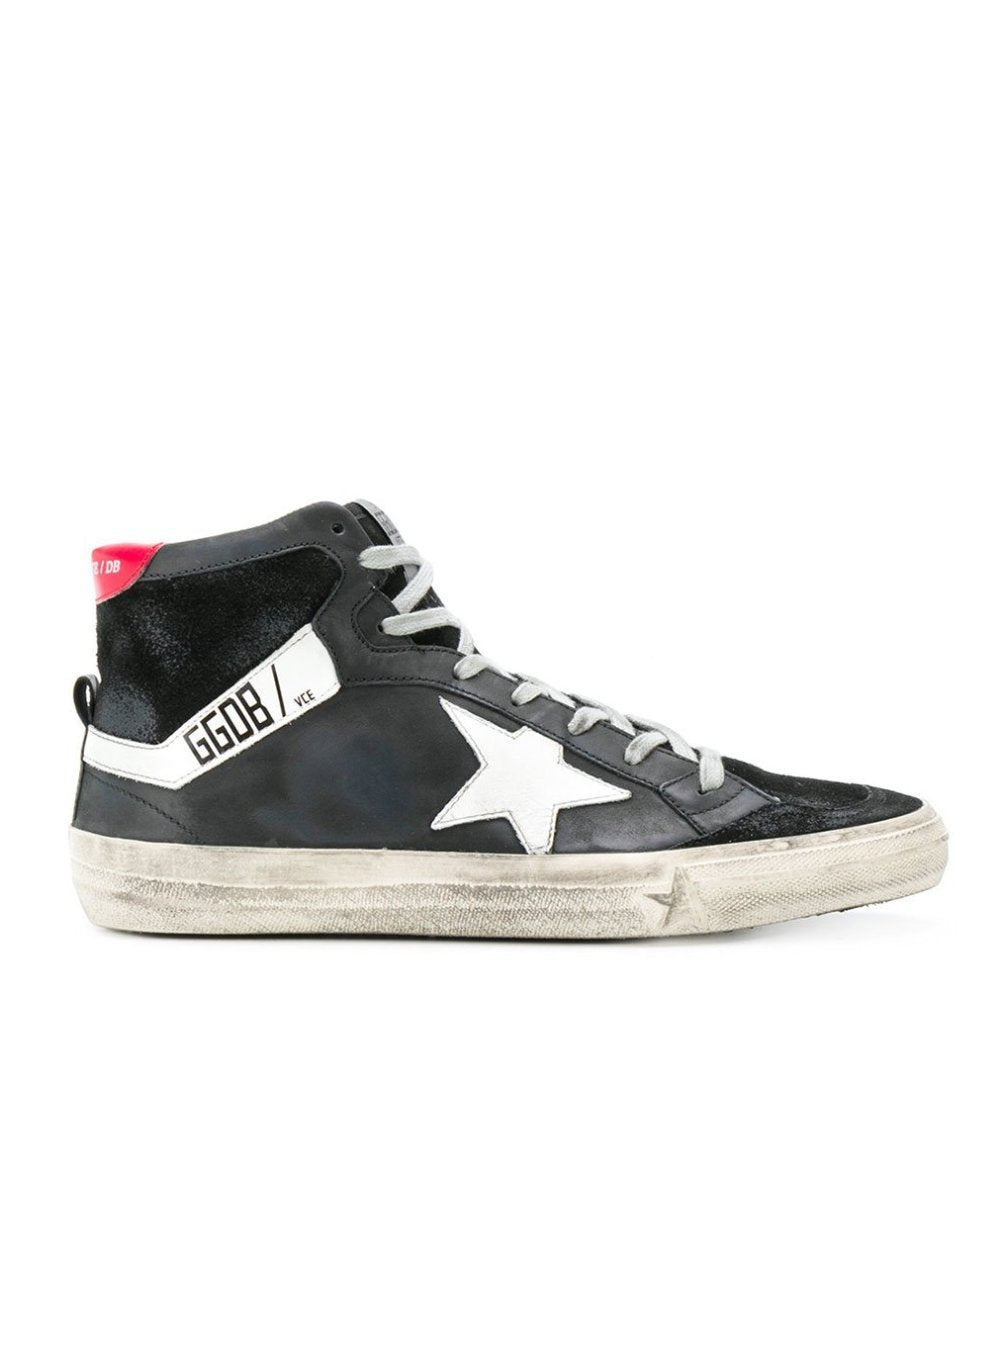 GOLDEN GOOSE | Superstar Hi-Top Sneakers in Black/Cherry Red